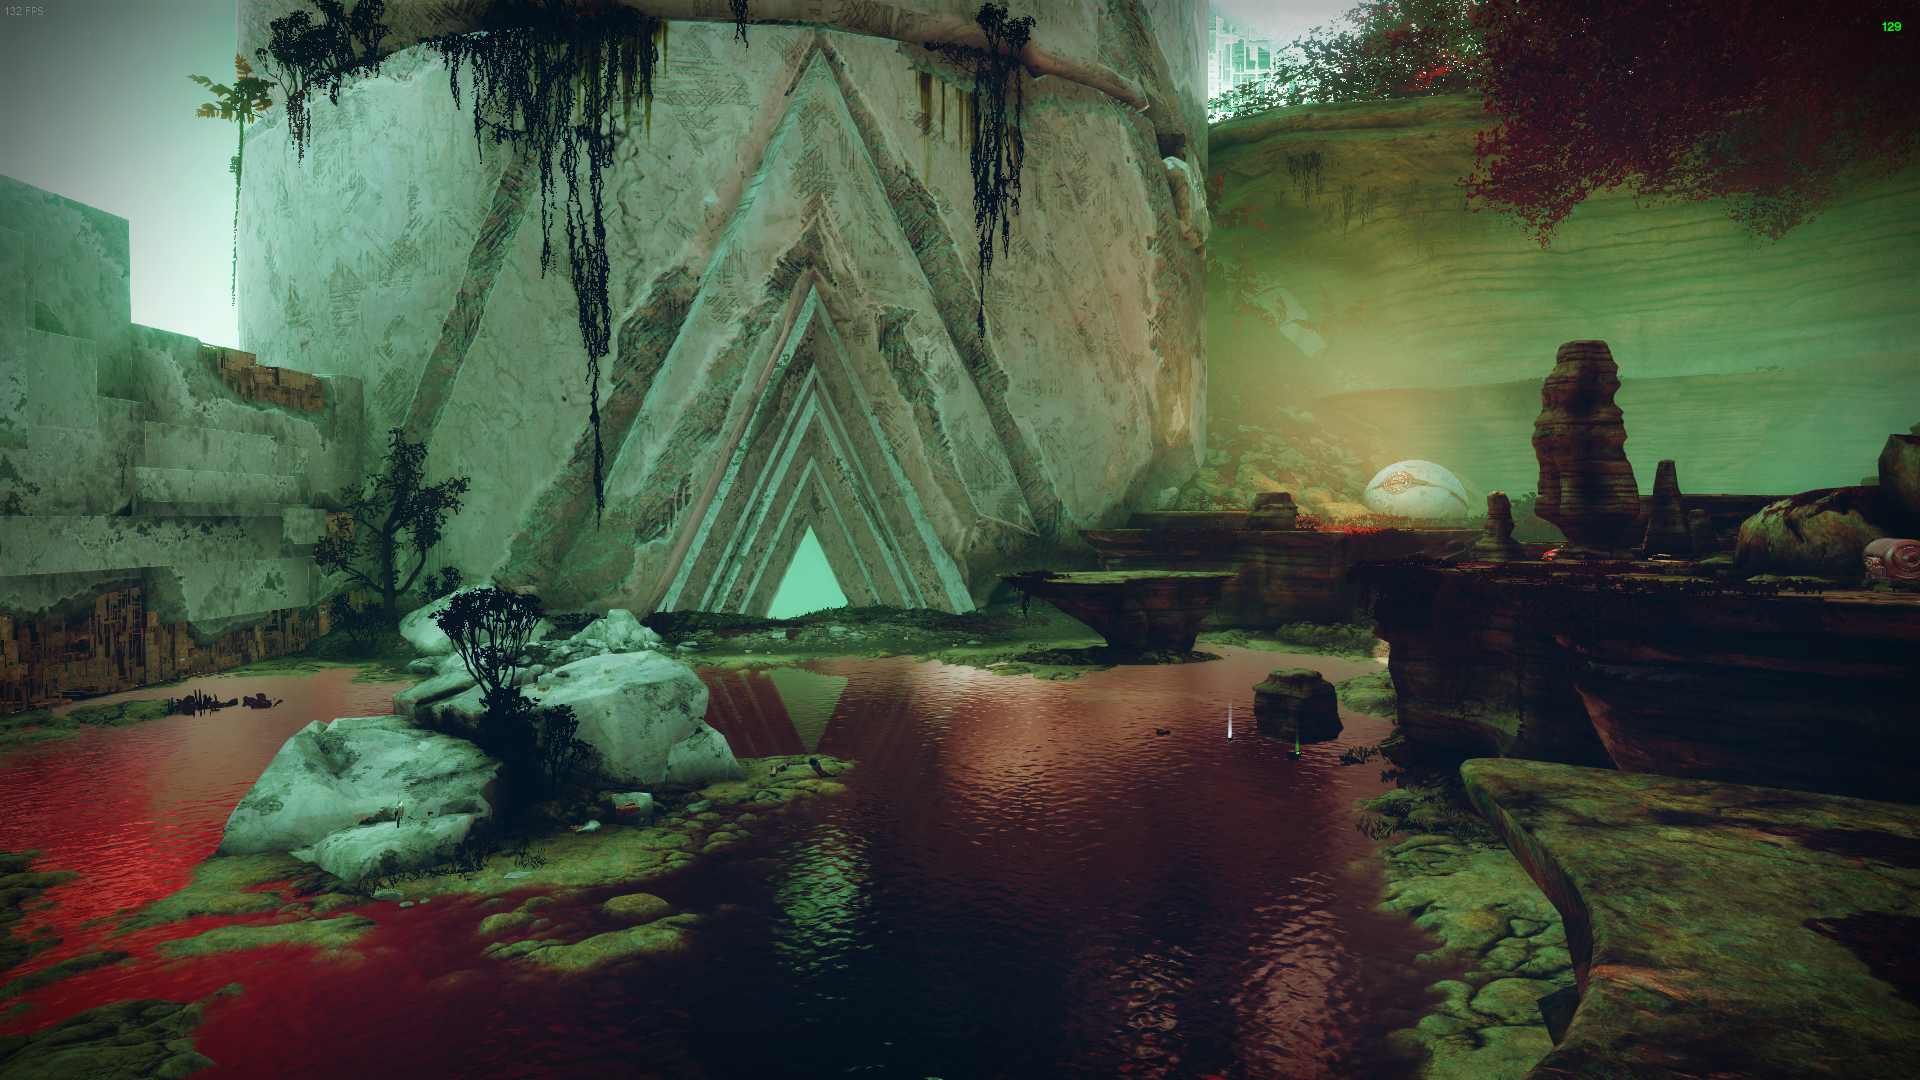 Concentric triangles mark an entrance into a Vex tower. The shapes reflect in the water of the pond just outside. Rocky outcrops decorate the area.